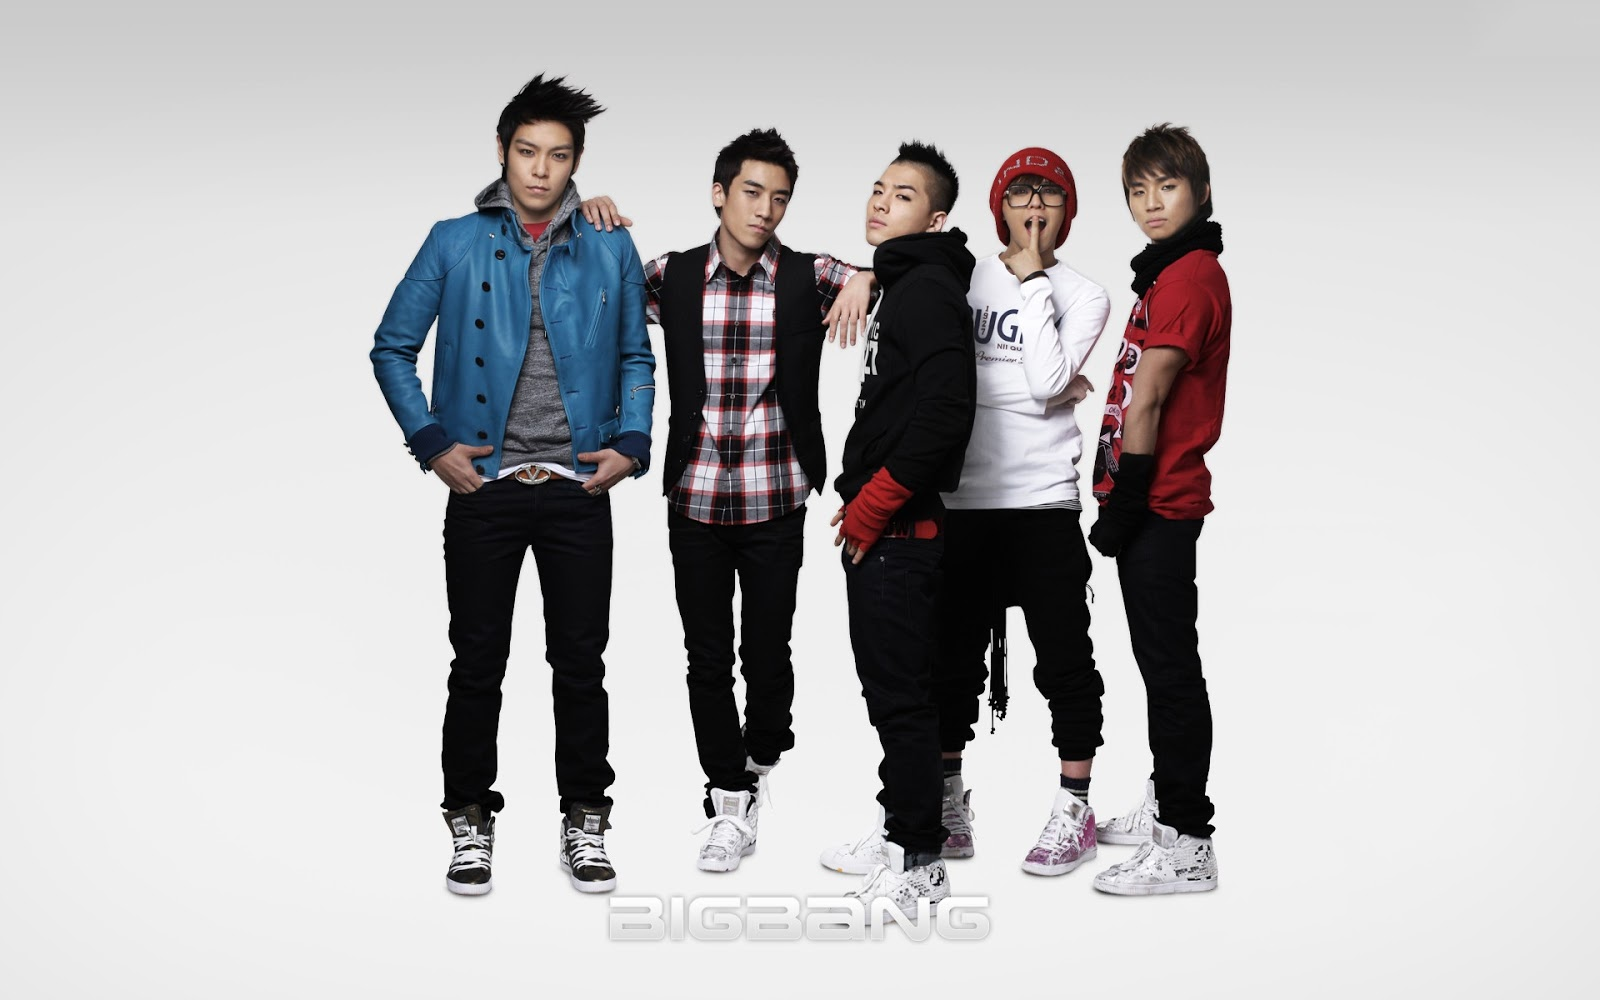 big bang 빅뱅 bigbang wallpaper hd 3 big bang 빅뱅